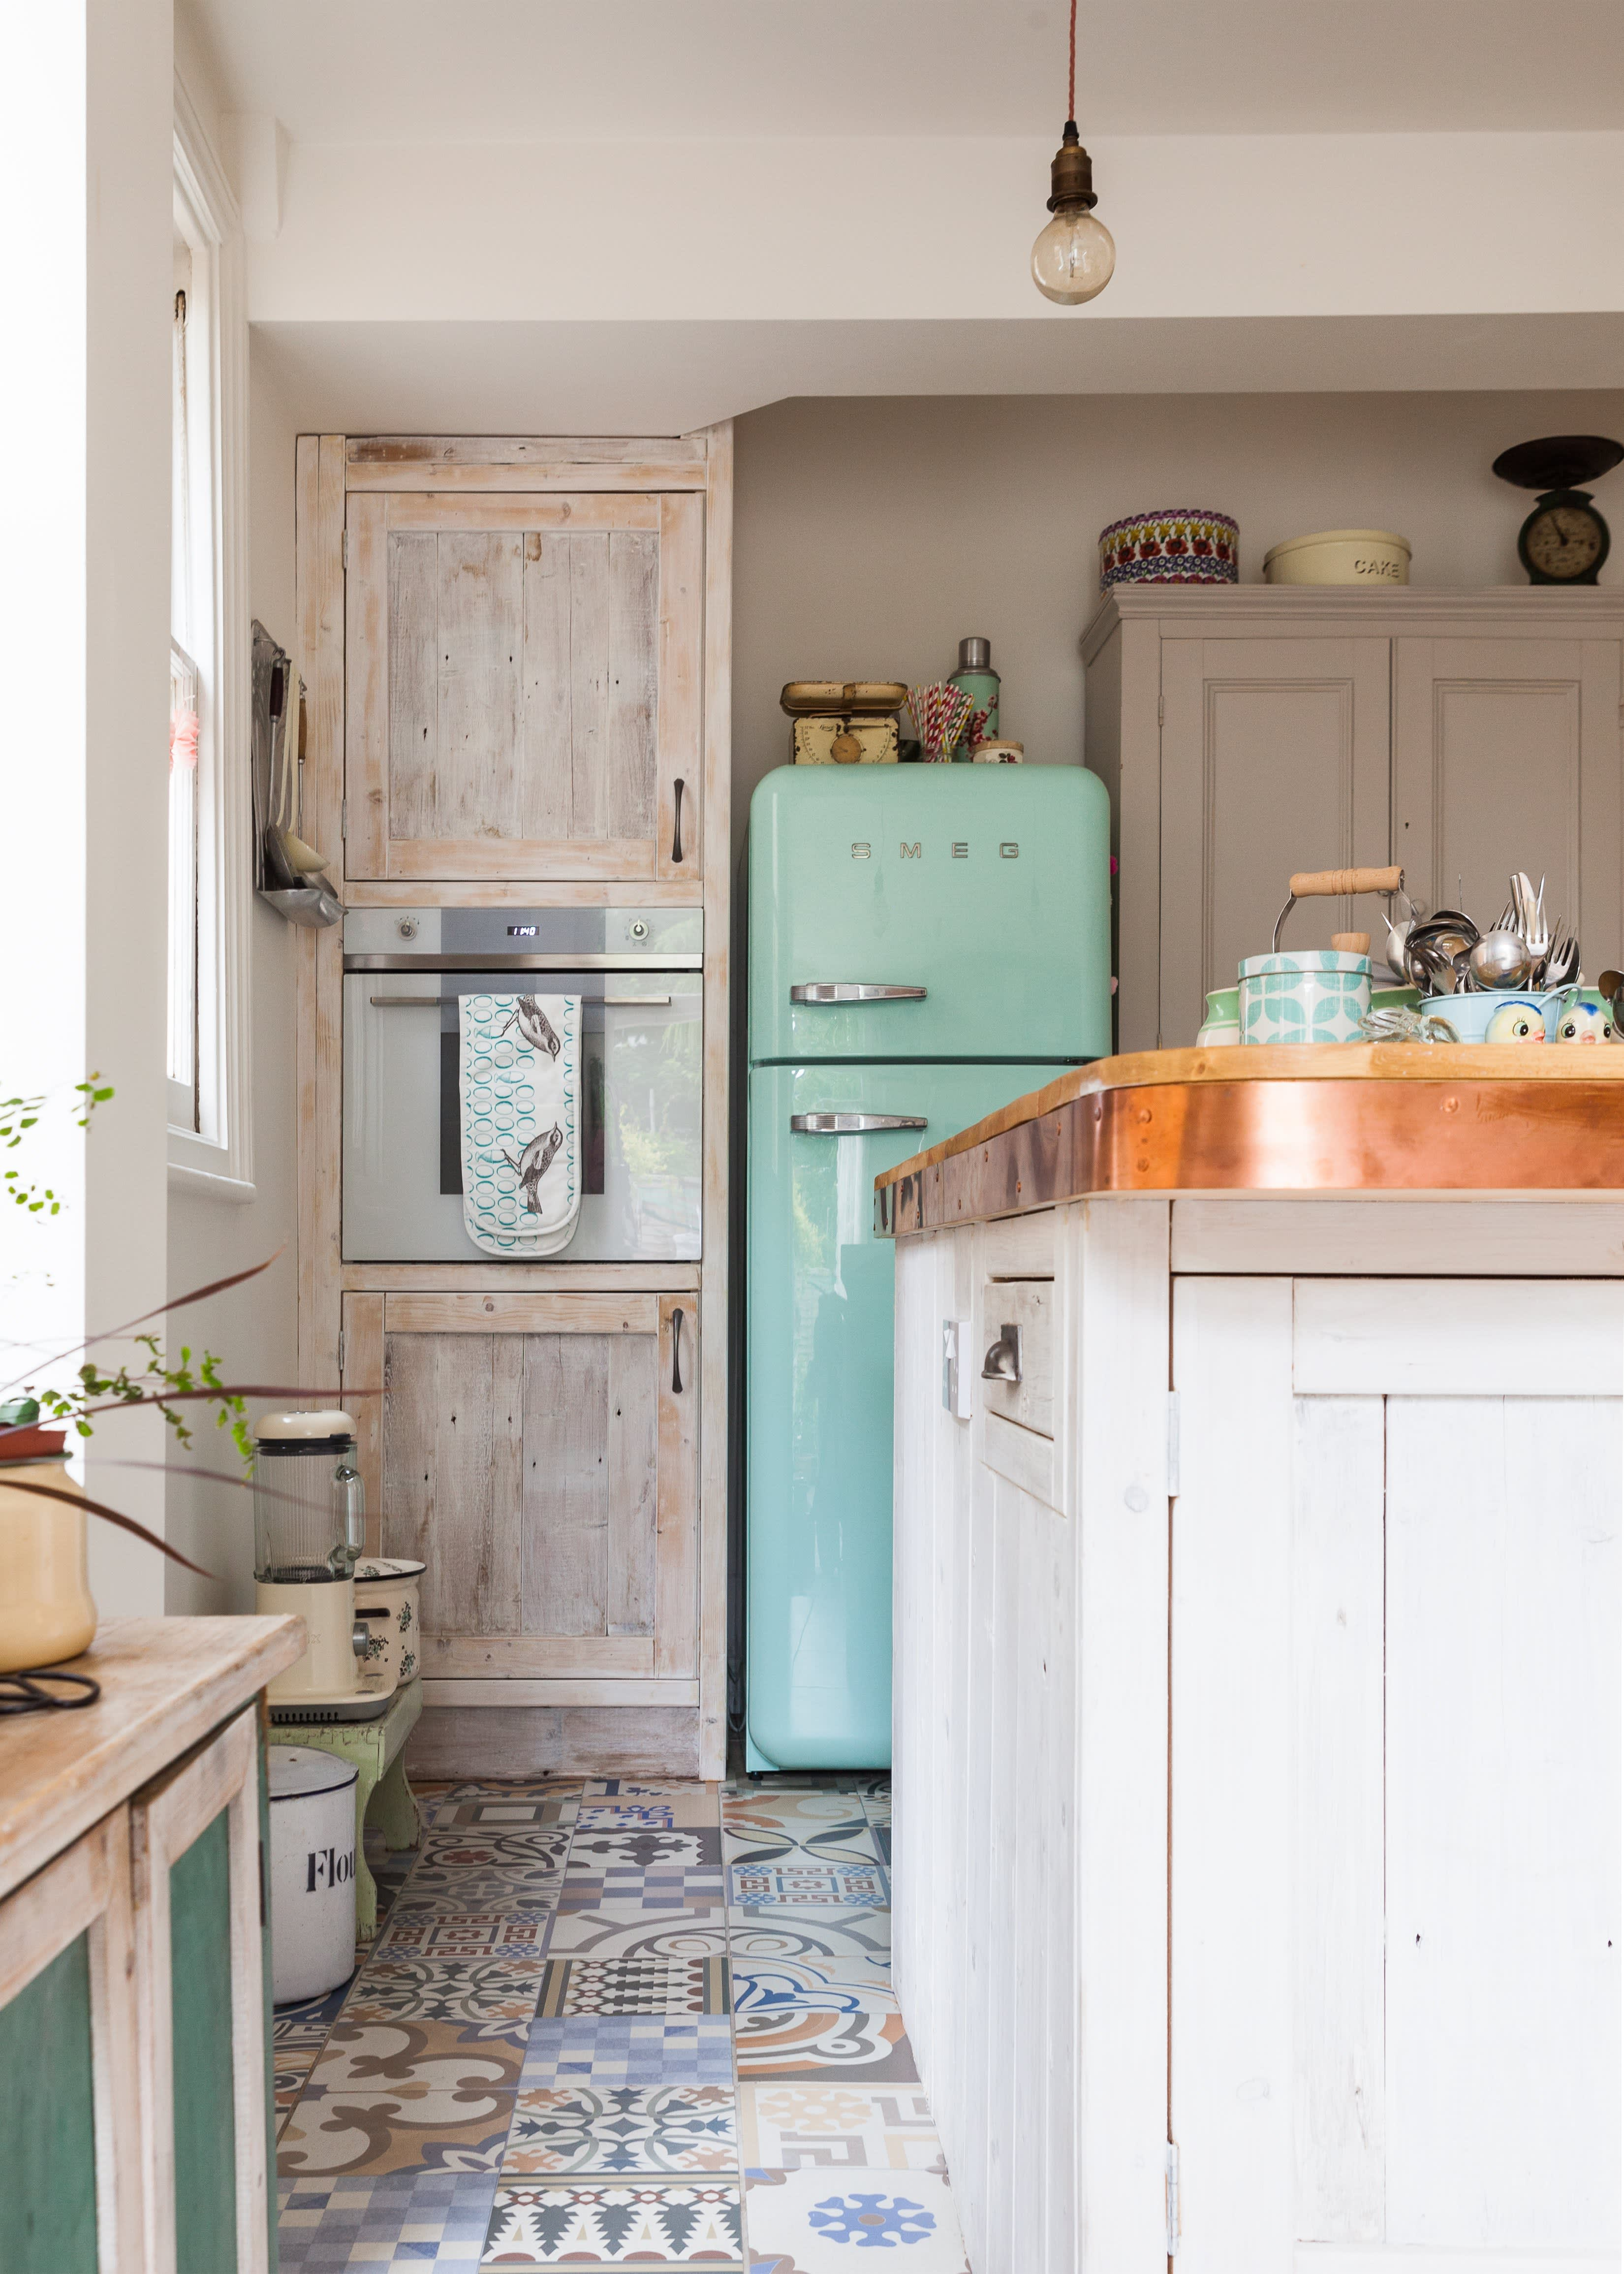 Modern Vintage Kitchen 3 Things I Love About This Modern Vintage Kitchen in London